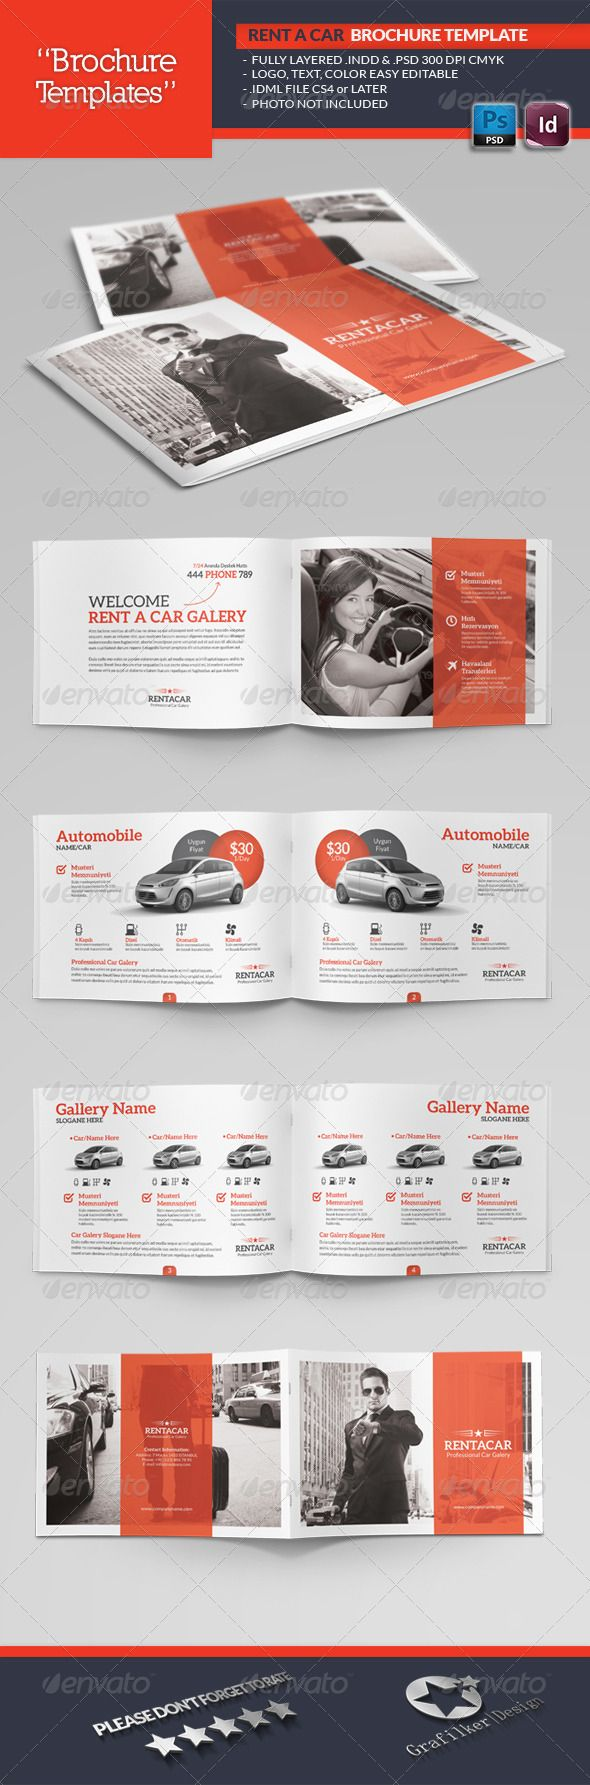 Rent A Car Brochure Template #GraphicRiver Rent A Car Brochure Template Fully layered INDD Fully layered PSD 300 Dpi, CMYK IDML format open Indesign CS4 or later Completely editable, print ready Text/Font or Color can be altered as needed All Image are in vector format, so can customise easily Photos are not included in the file Font File: Aleo Font: .behance /gallery/ALEO-Free-Font-Family/8018673 Lato Font: .fontsquirrel /fonts/lato Social-Logos: .dafont /social-logos.font Help.txt file…